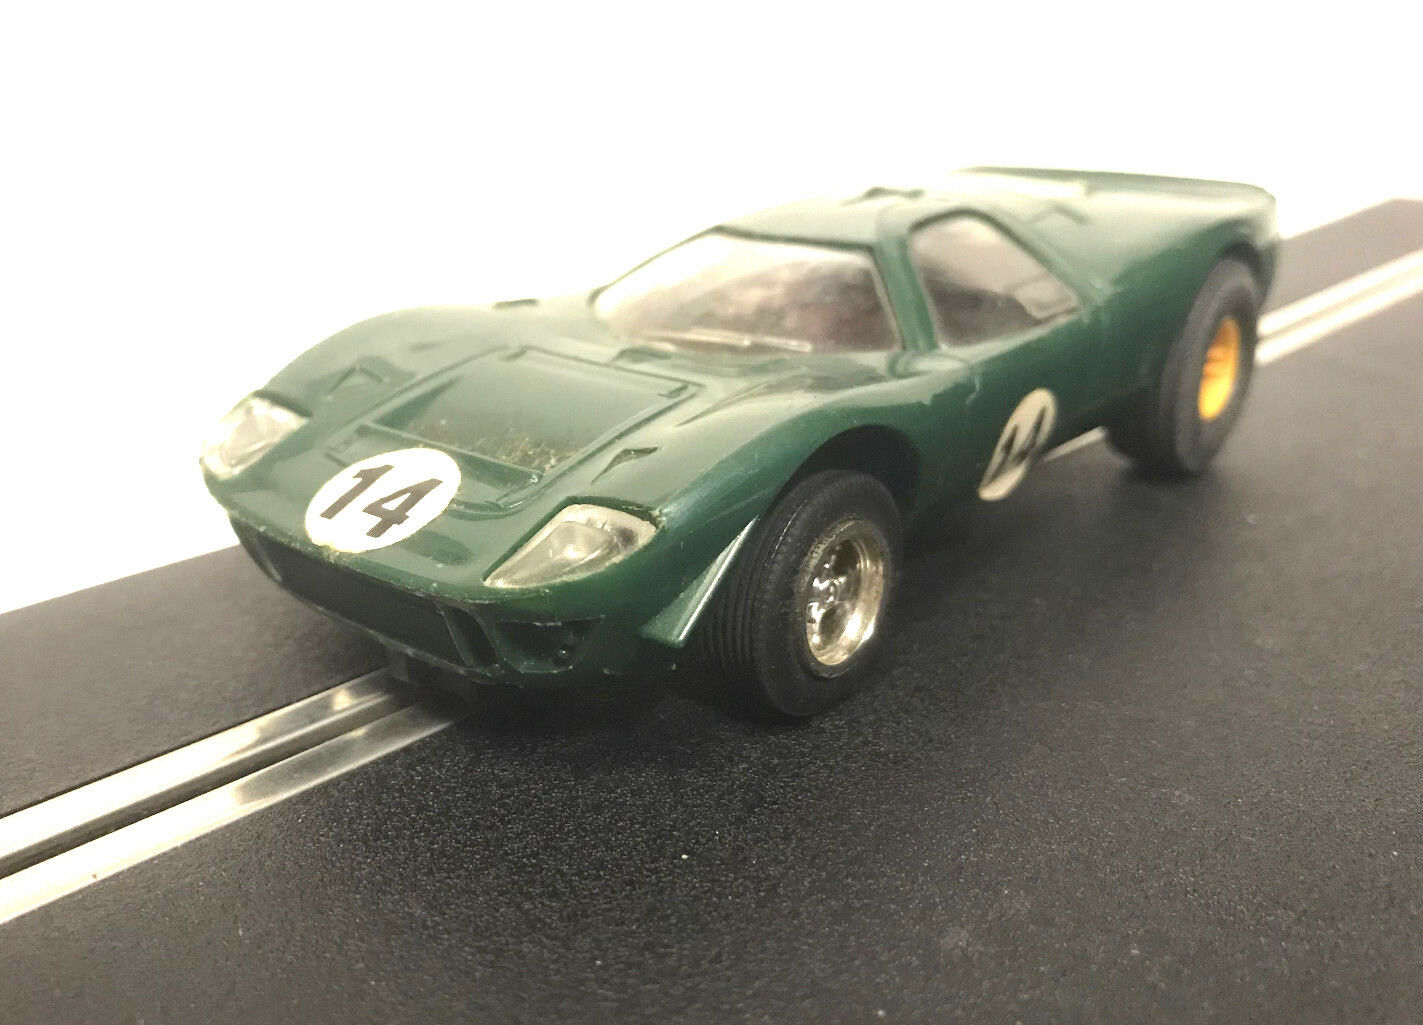 Scalextric C15 Mirage Ford Green Vintage Slot Car